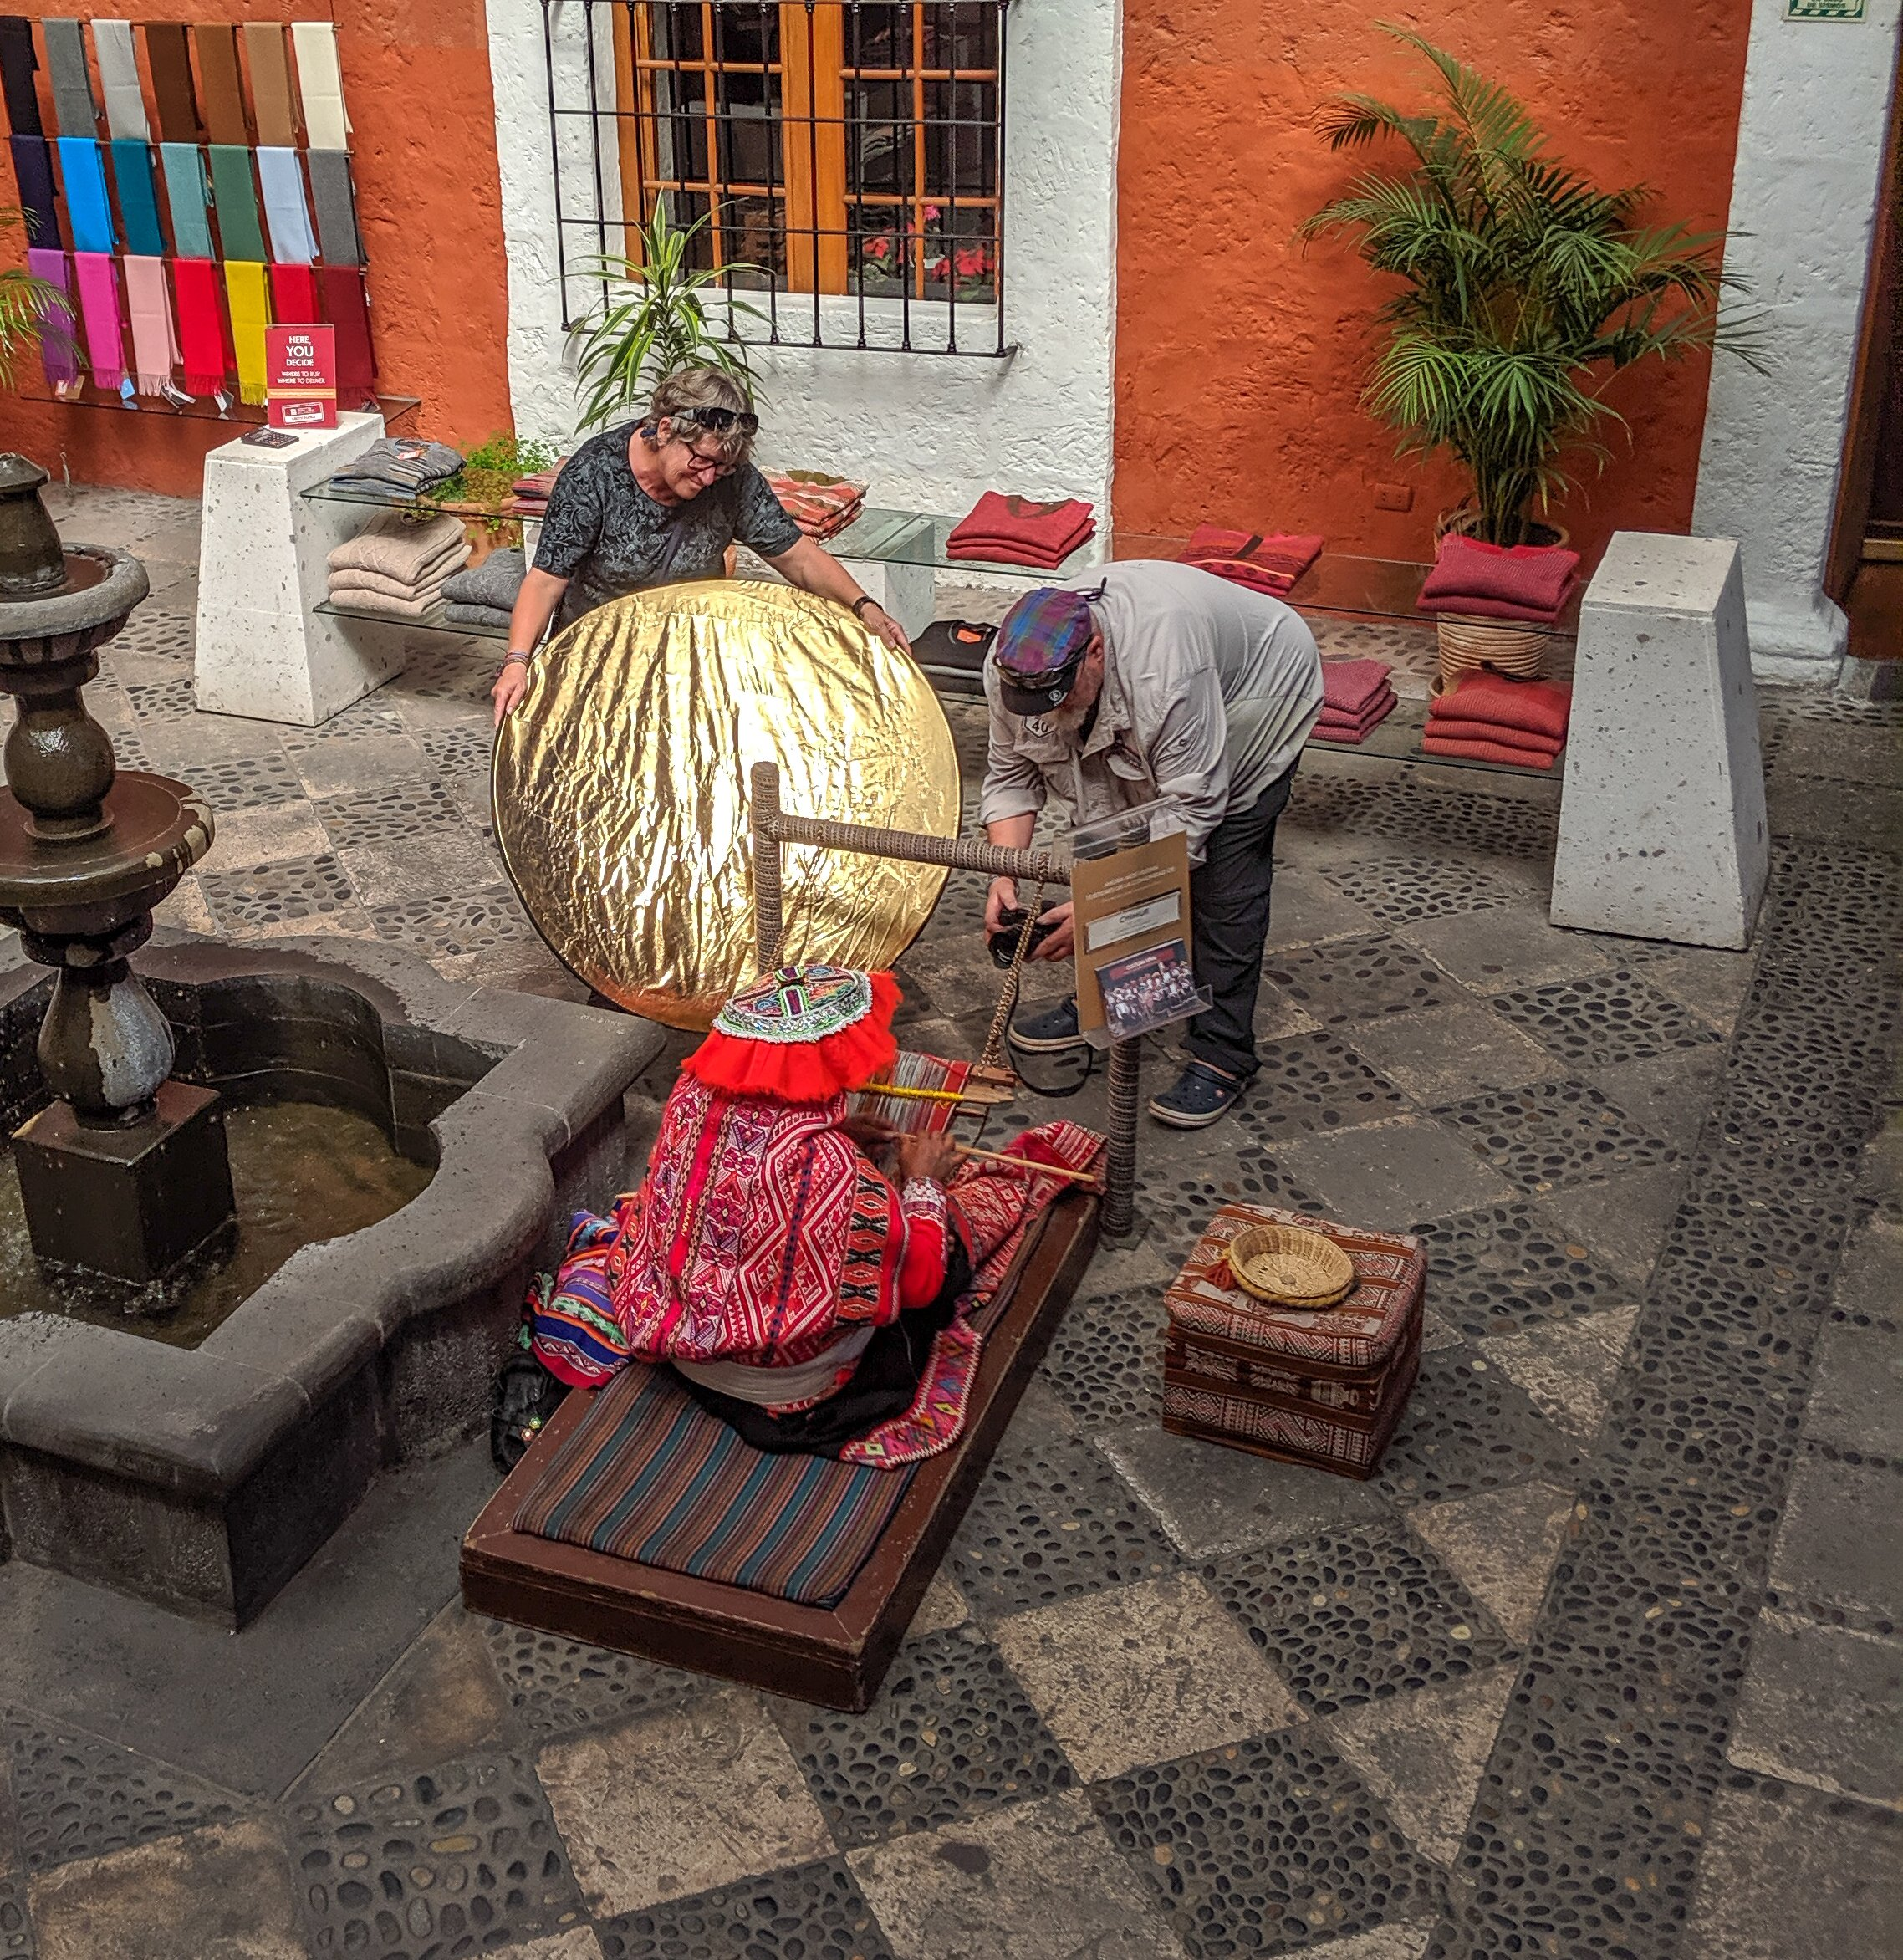 Two western tourists use professional equipment to photograph an indigenous woman in peru.